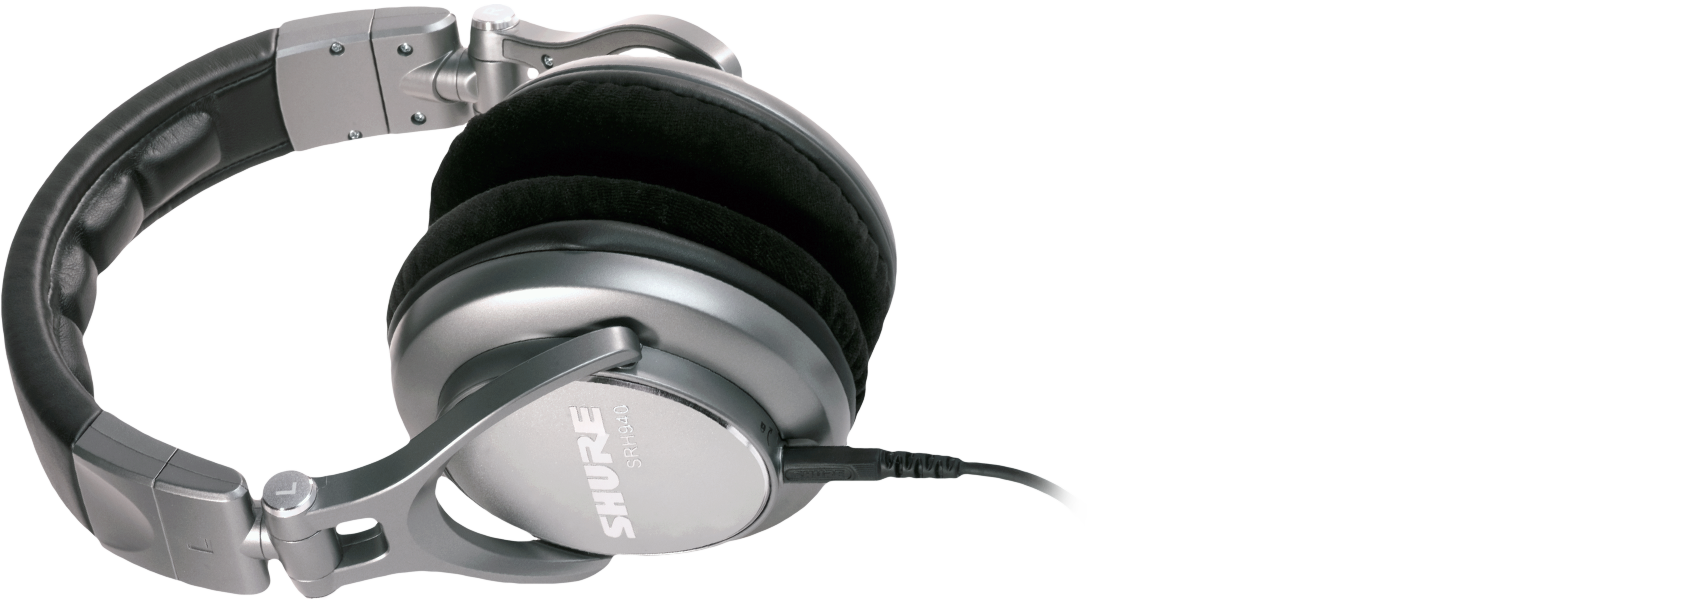 Illustration Shure SRH940 Reference Studio Headphones II